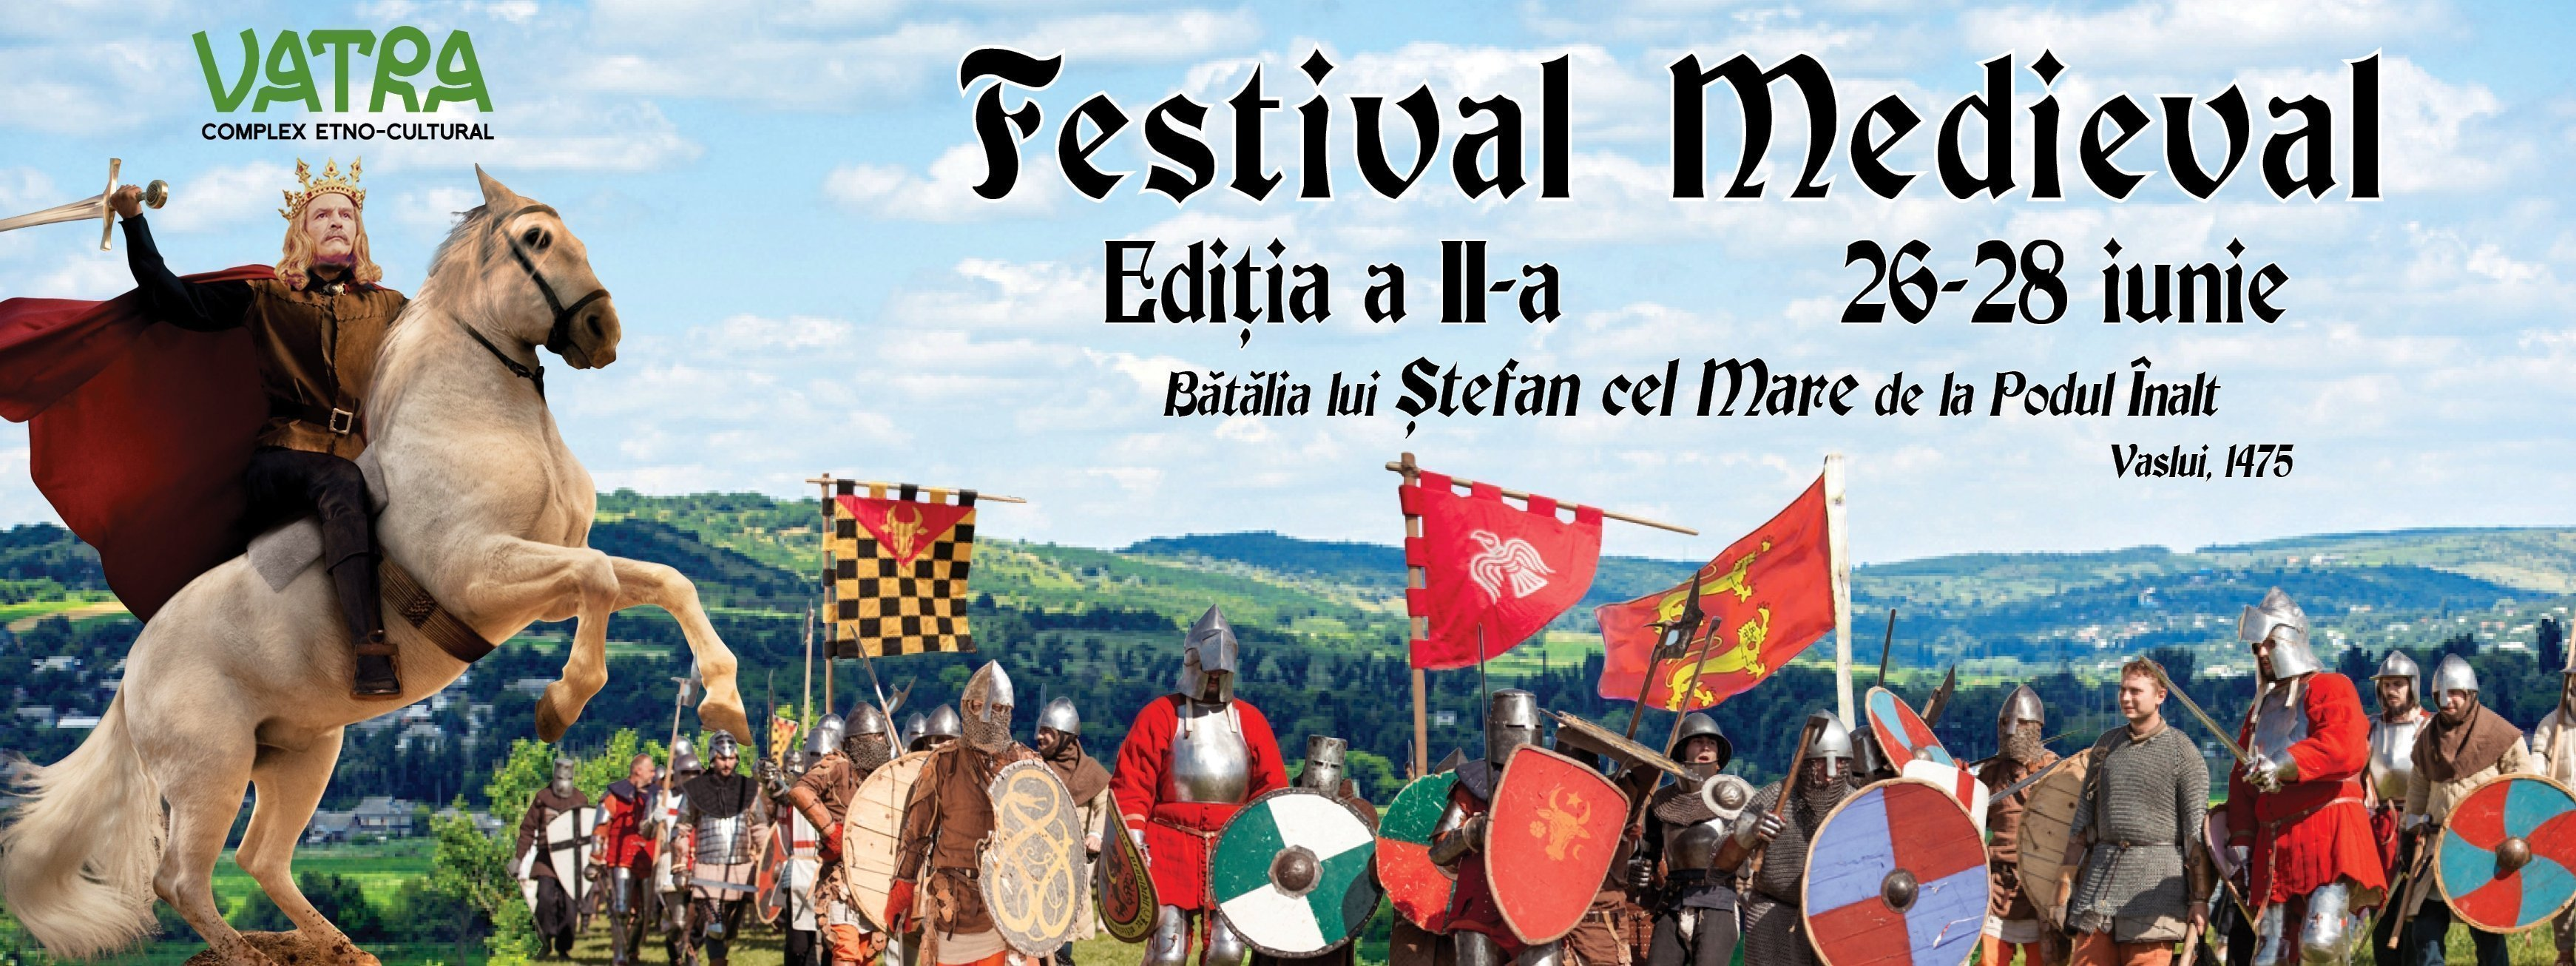 festivalul medieval 2015